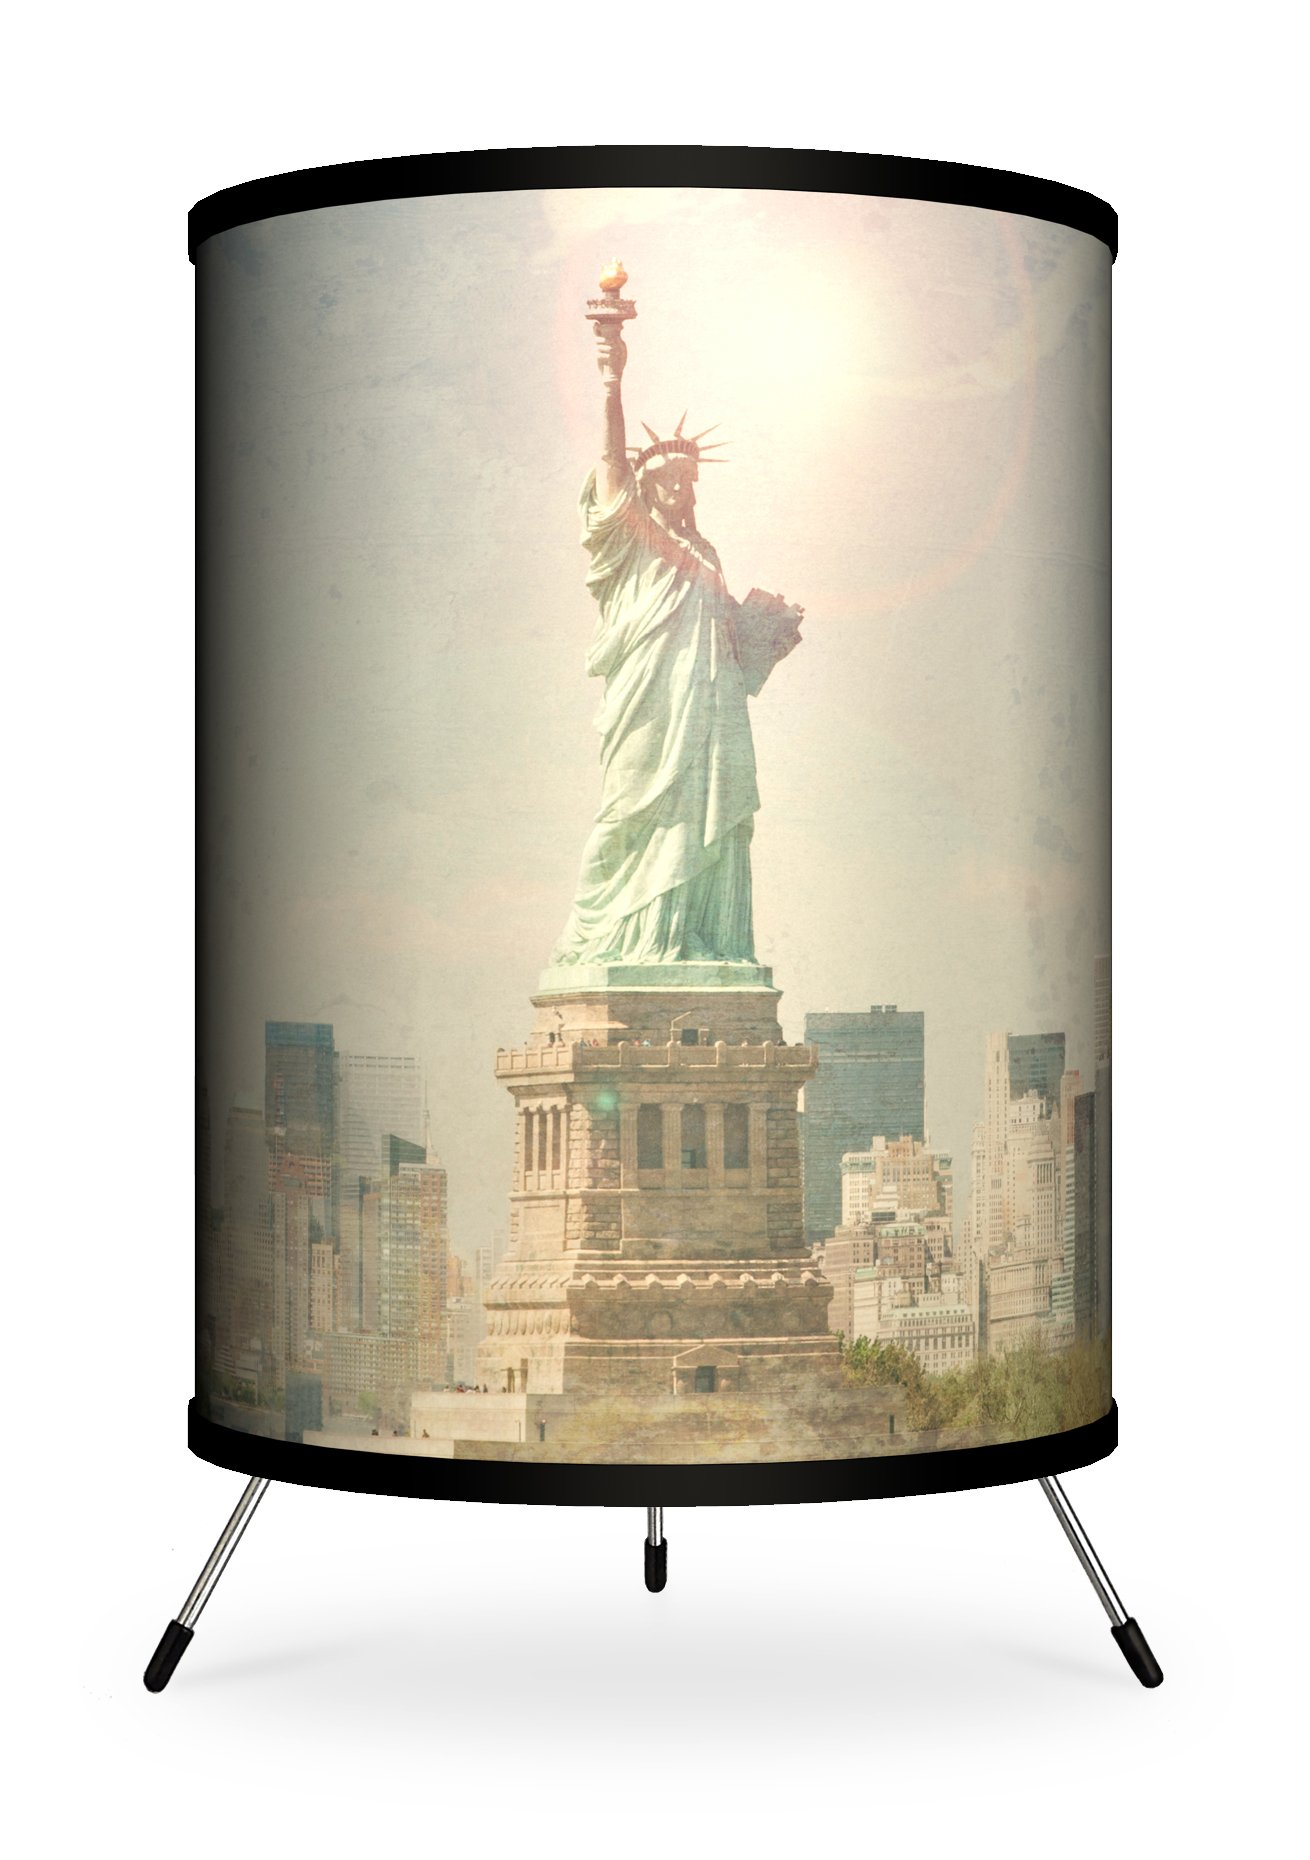 Lamp-In-A-Box TRI-FAR-MMSTA Featured Artists - Michael Mandolfo ''Statue Of Liberty'' Tripod Lamp